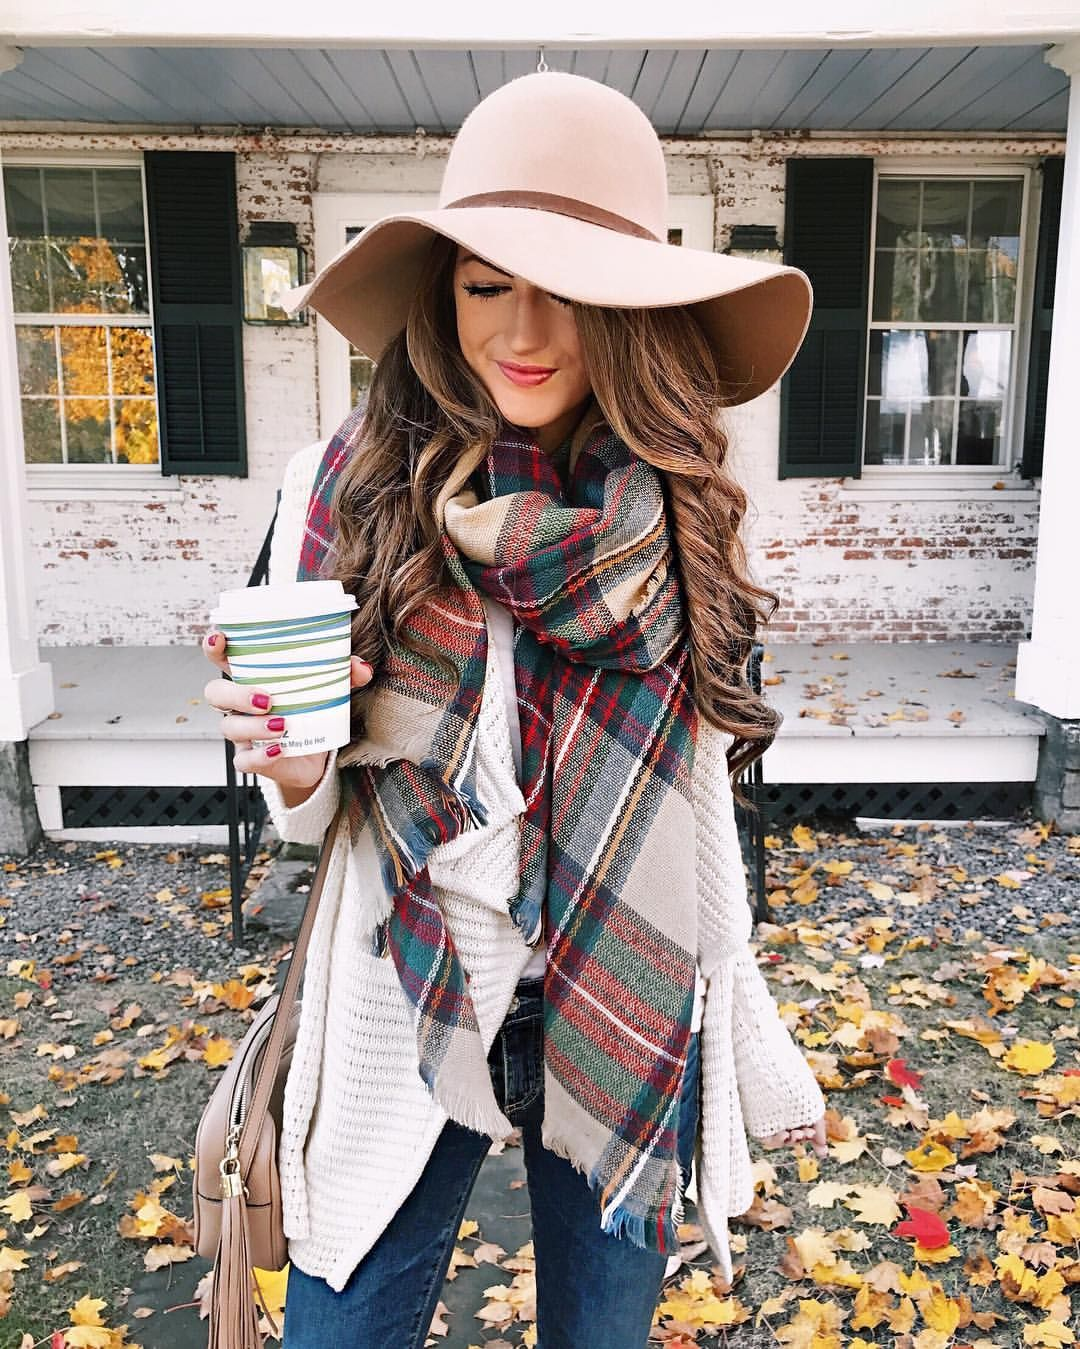 d64aeb2ce30 Fall layers outfit - plaid blanket scarf and tan floppy hat ...